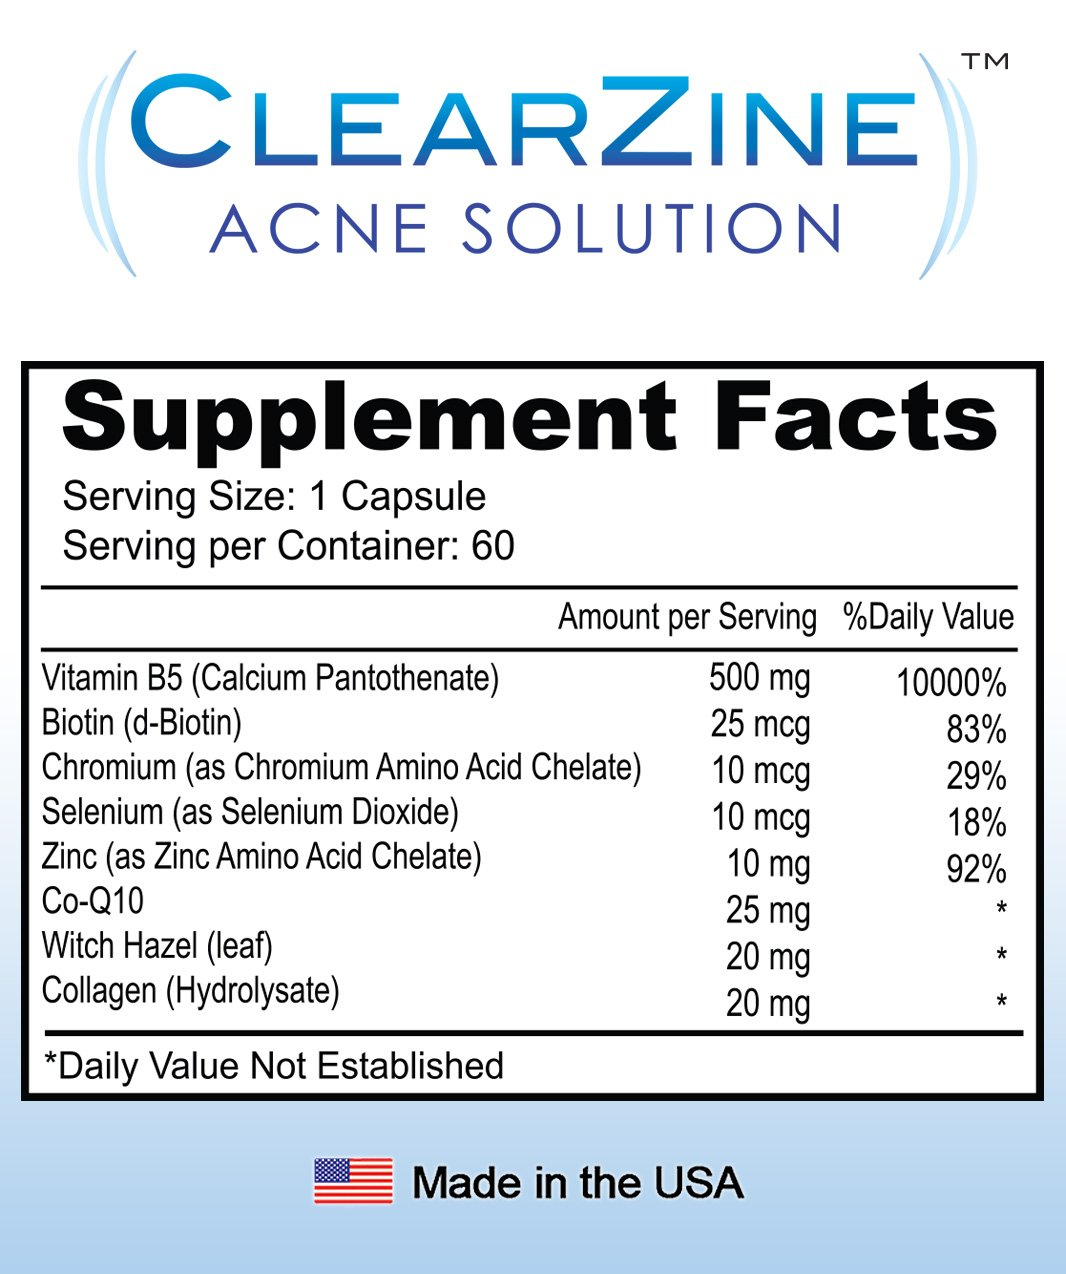 acne review clearzine solution scam